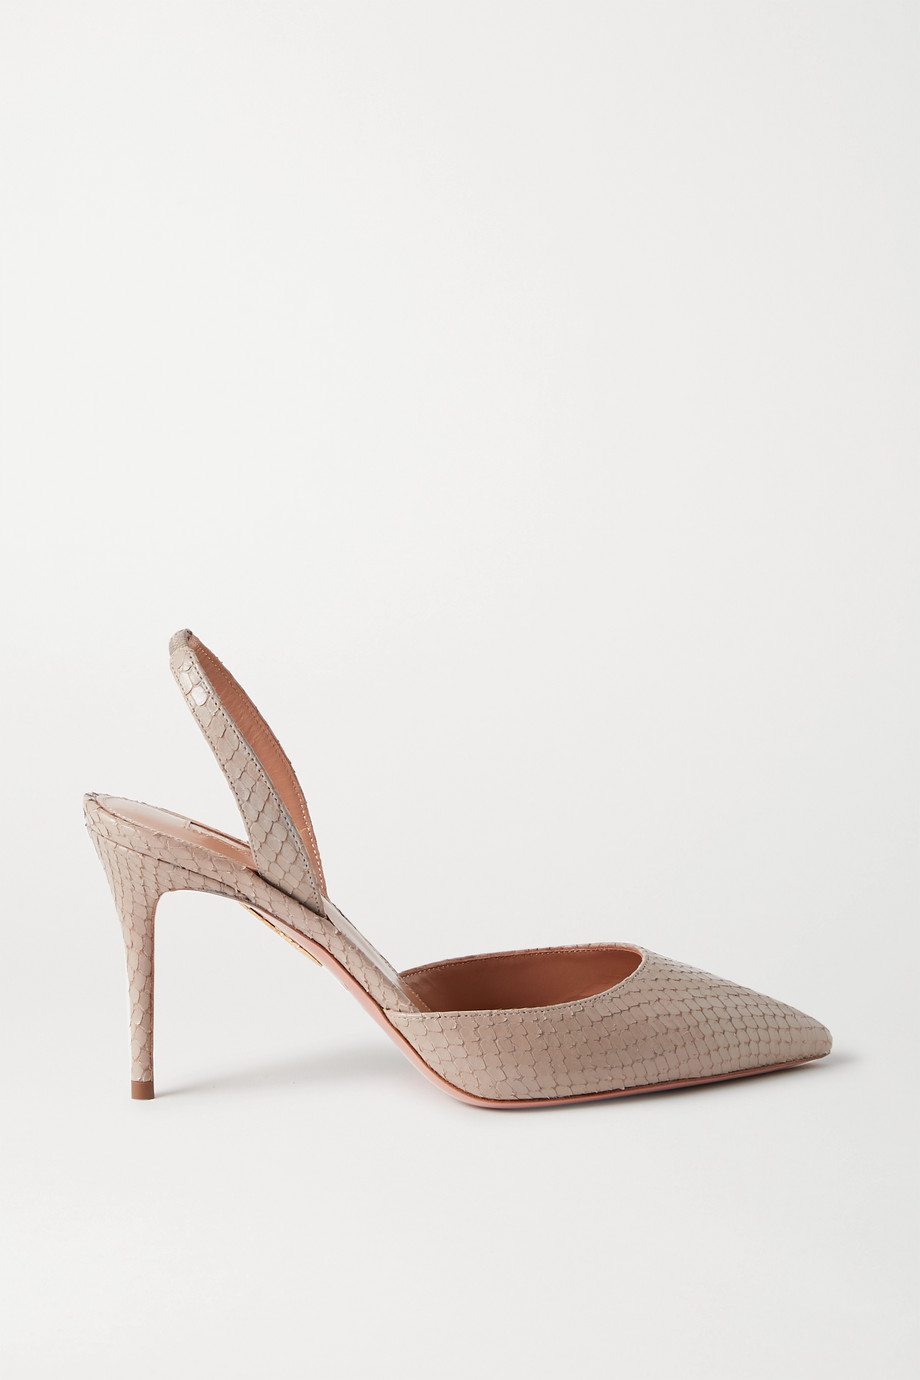 Aquazzura So Nude 85 snake-effect leather slingback pumps